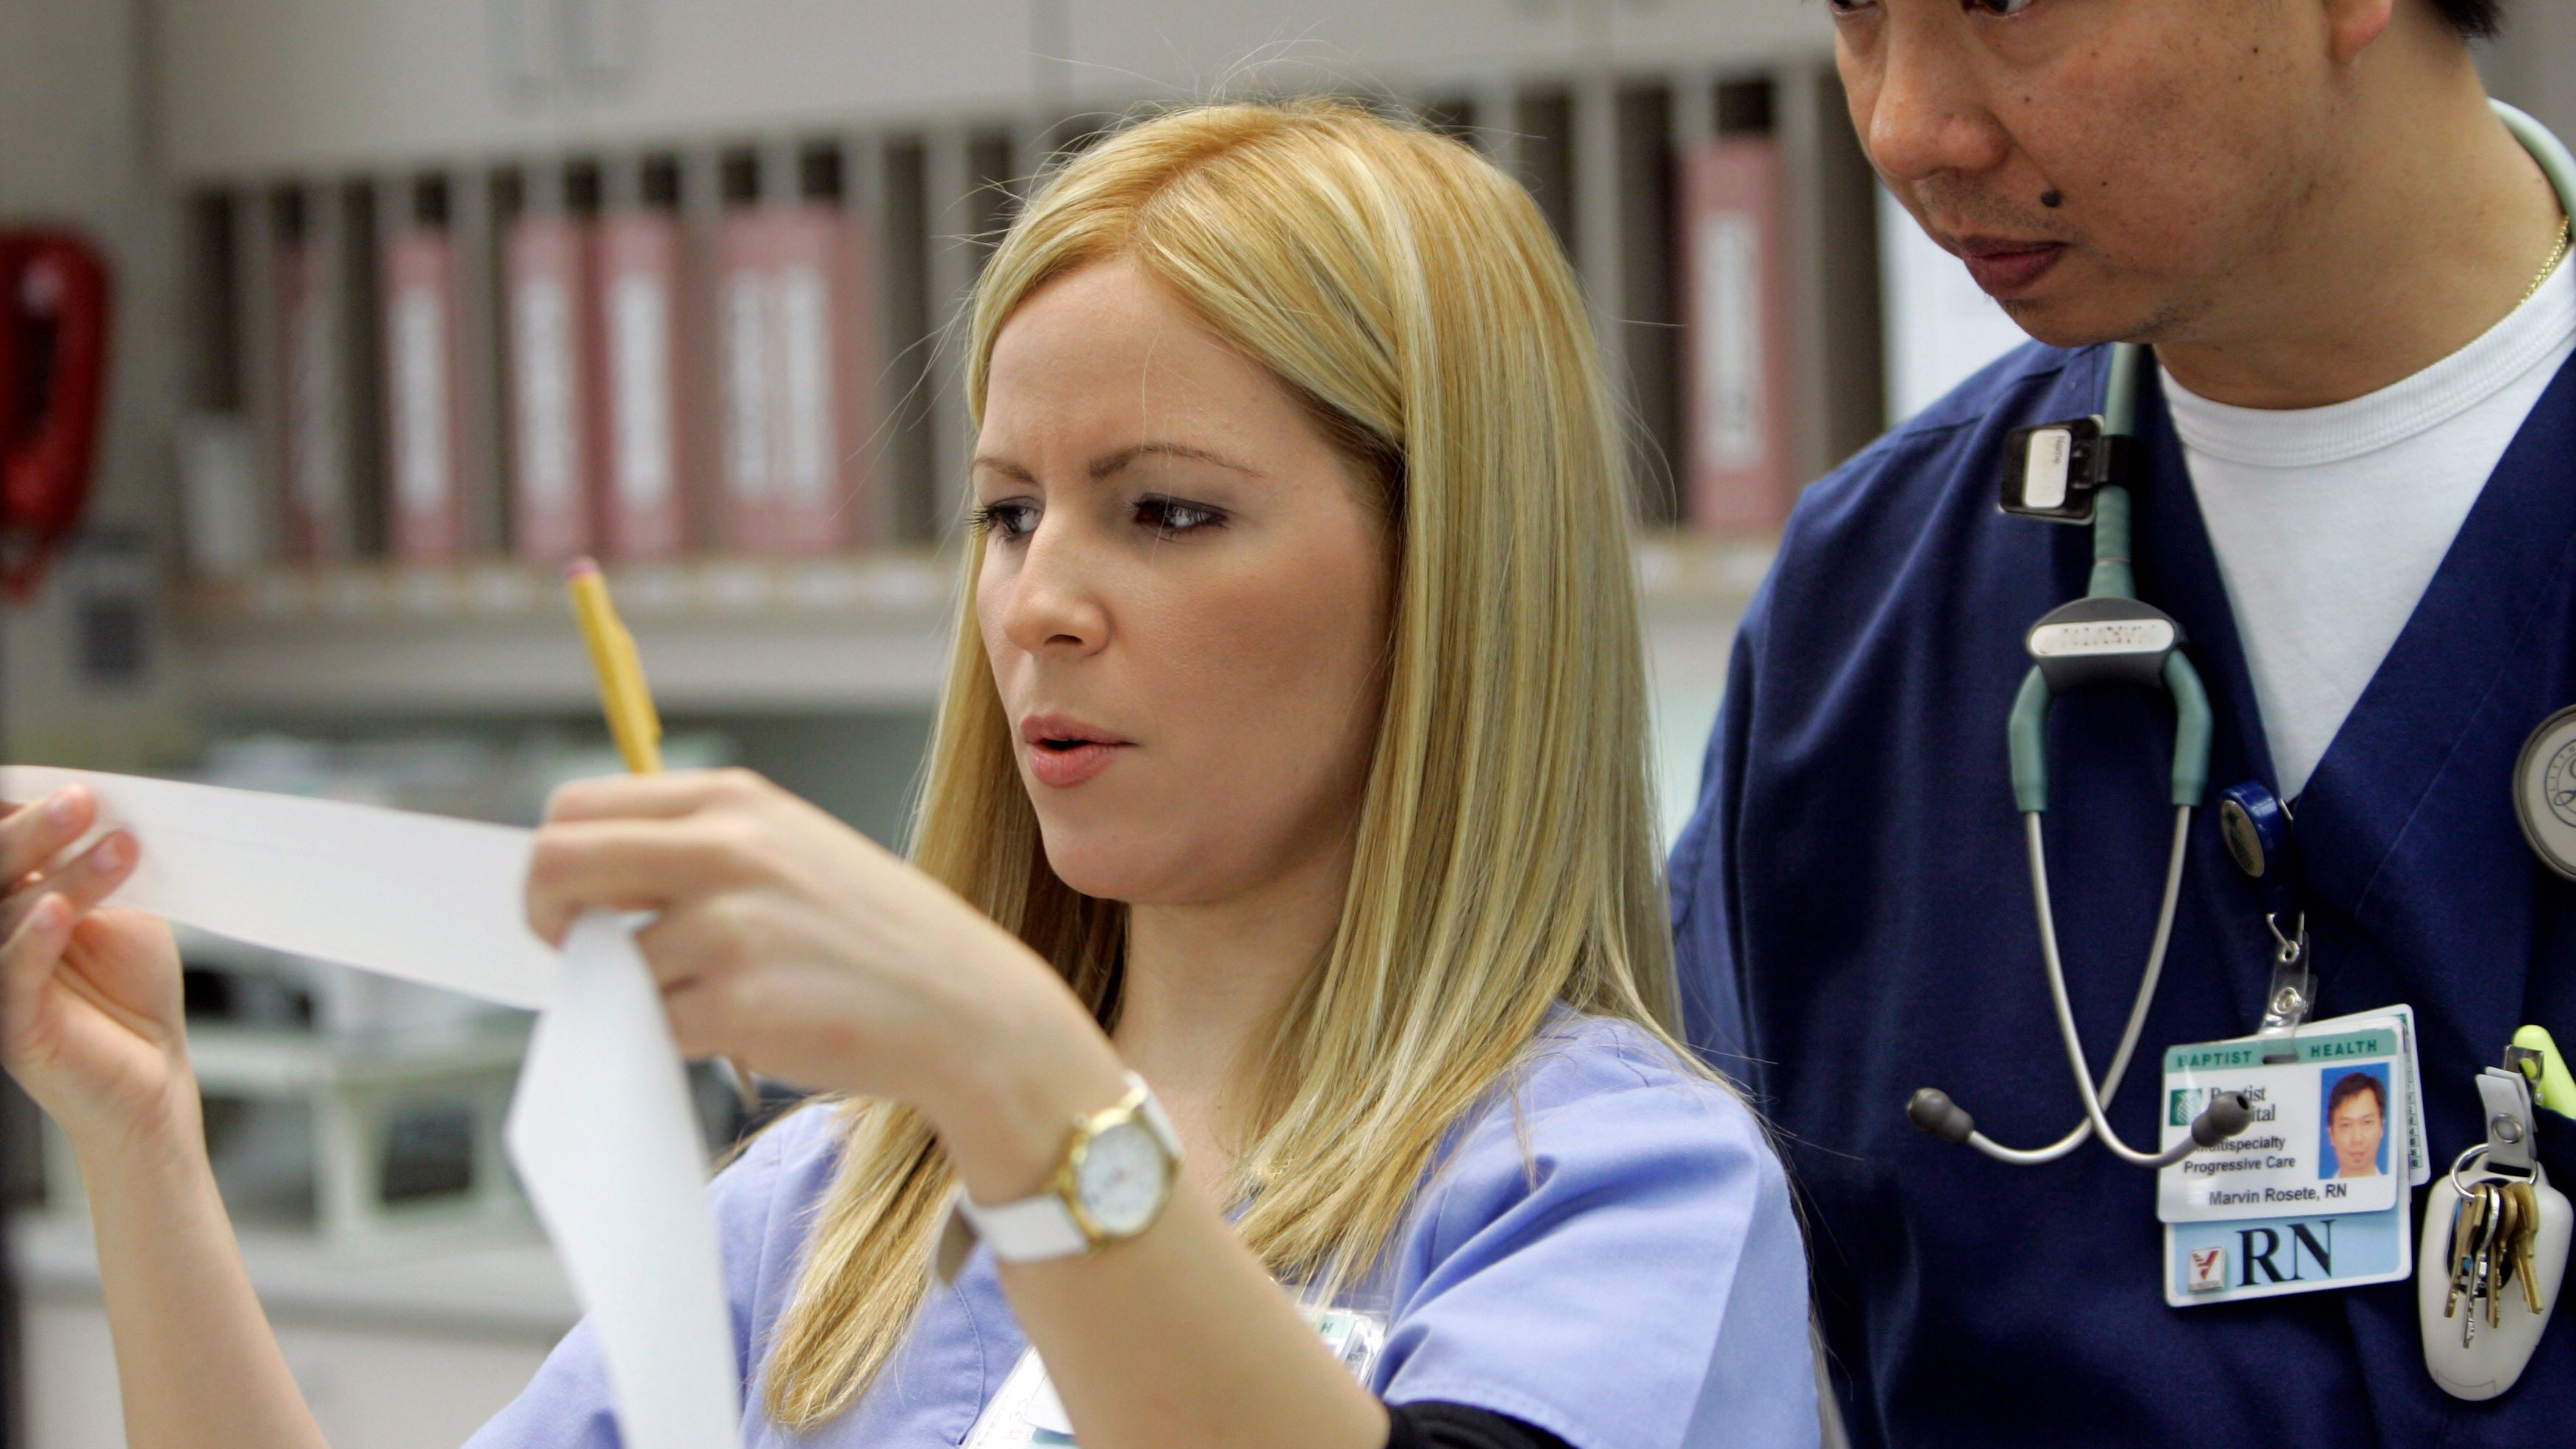 A nurse reading an electrocardiogram result.